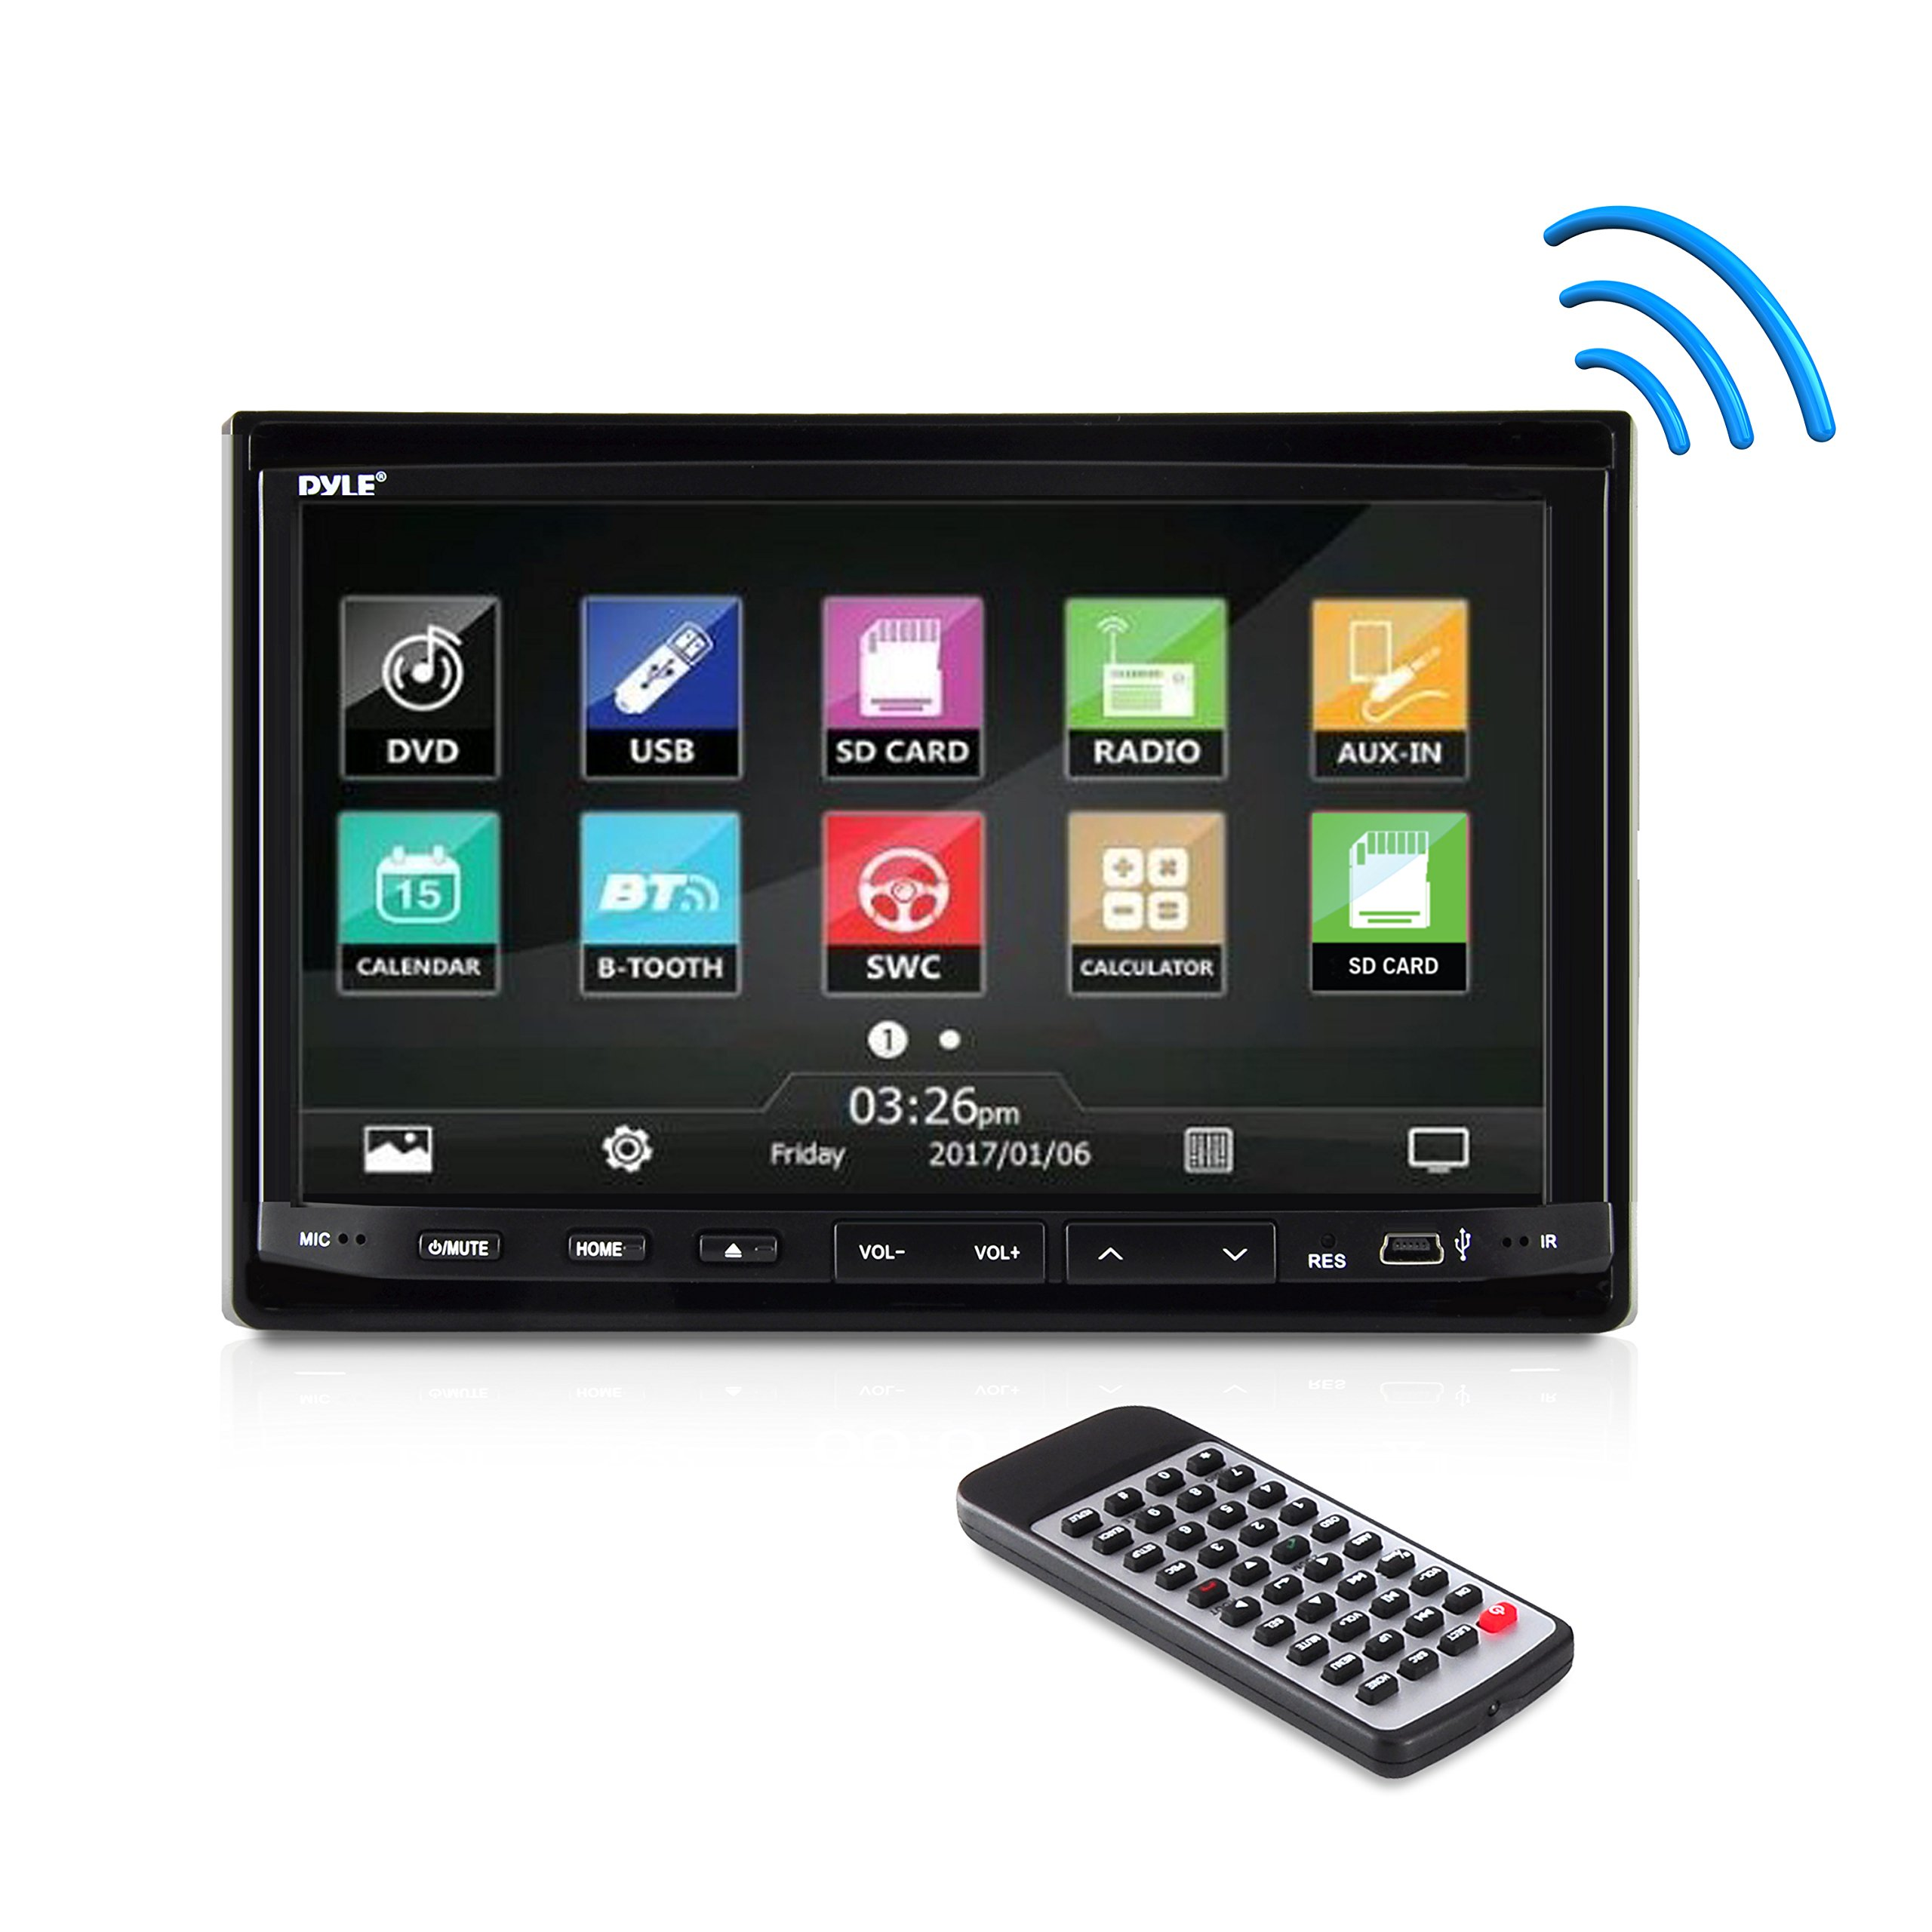 Pyle PLDN744 7-Inch Double Din In-Dash Motorized Slide-Down Touch Screen Car Stereo Receiver with Bluetooth, Disc/MP3/MP4 Player, AM/FM Radio, Microphone and SD Memory Card Reader by Pyle